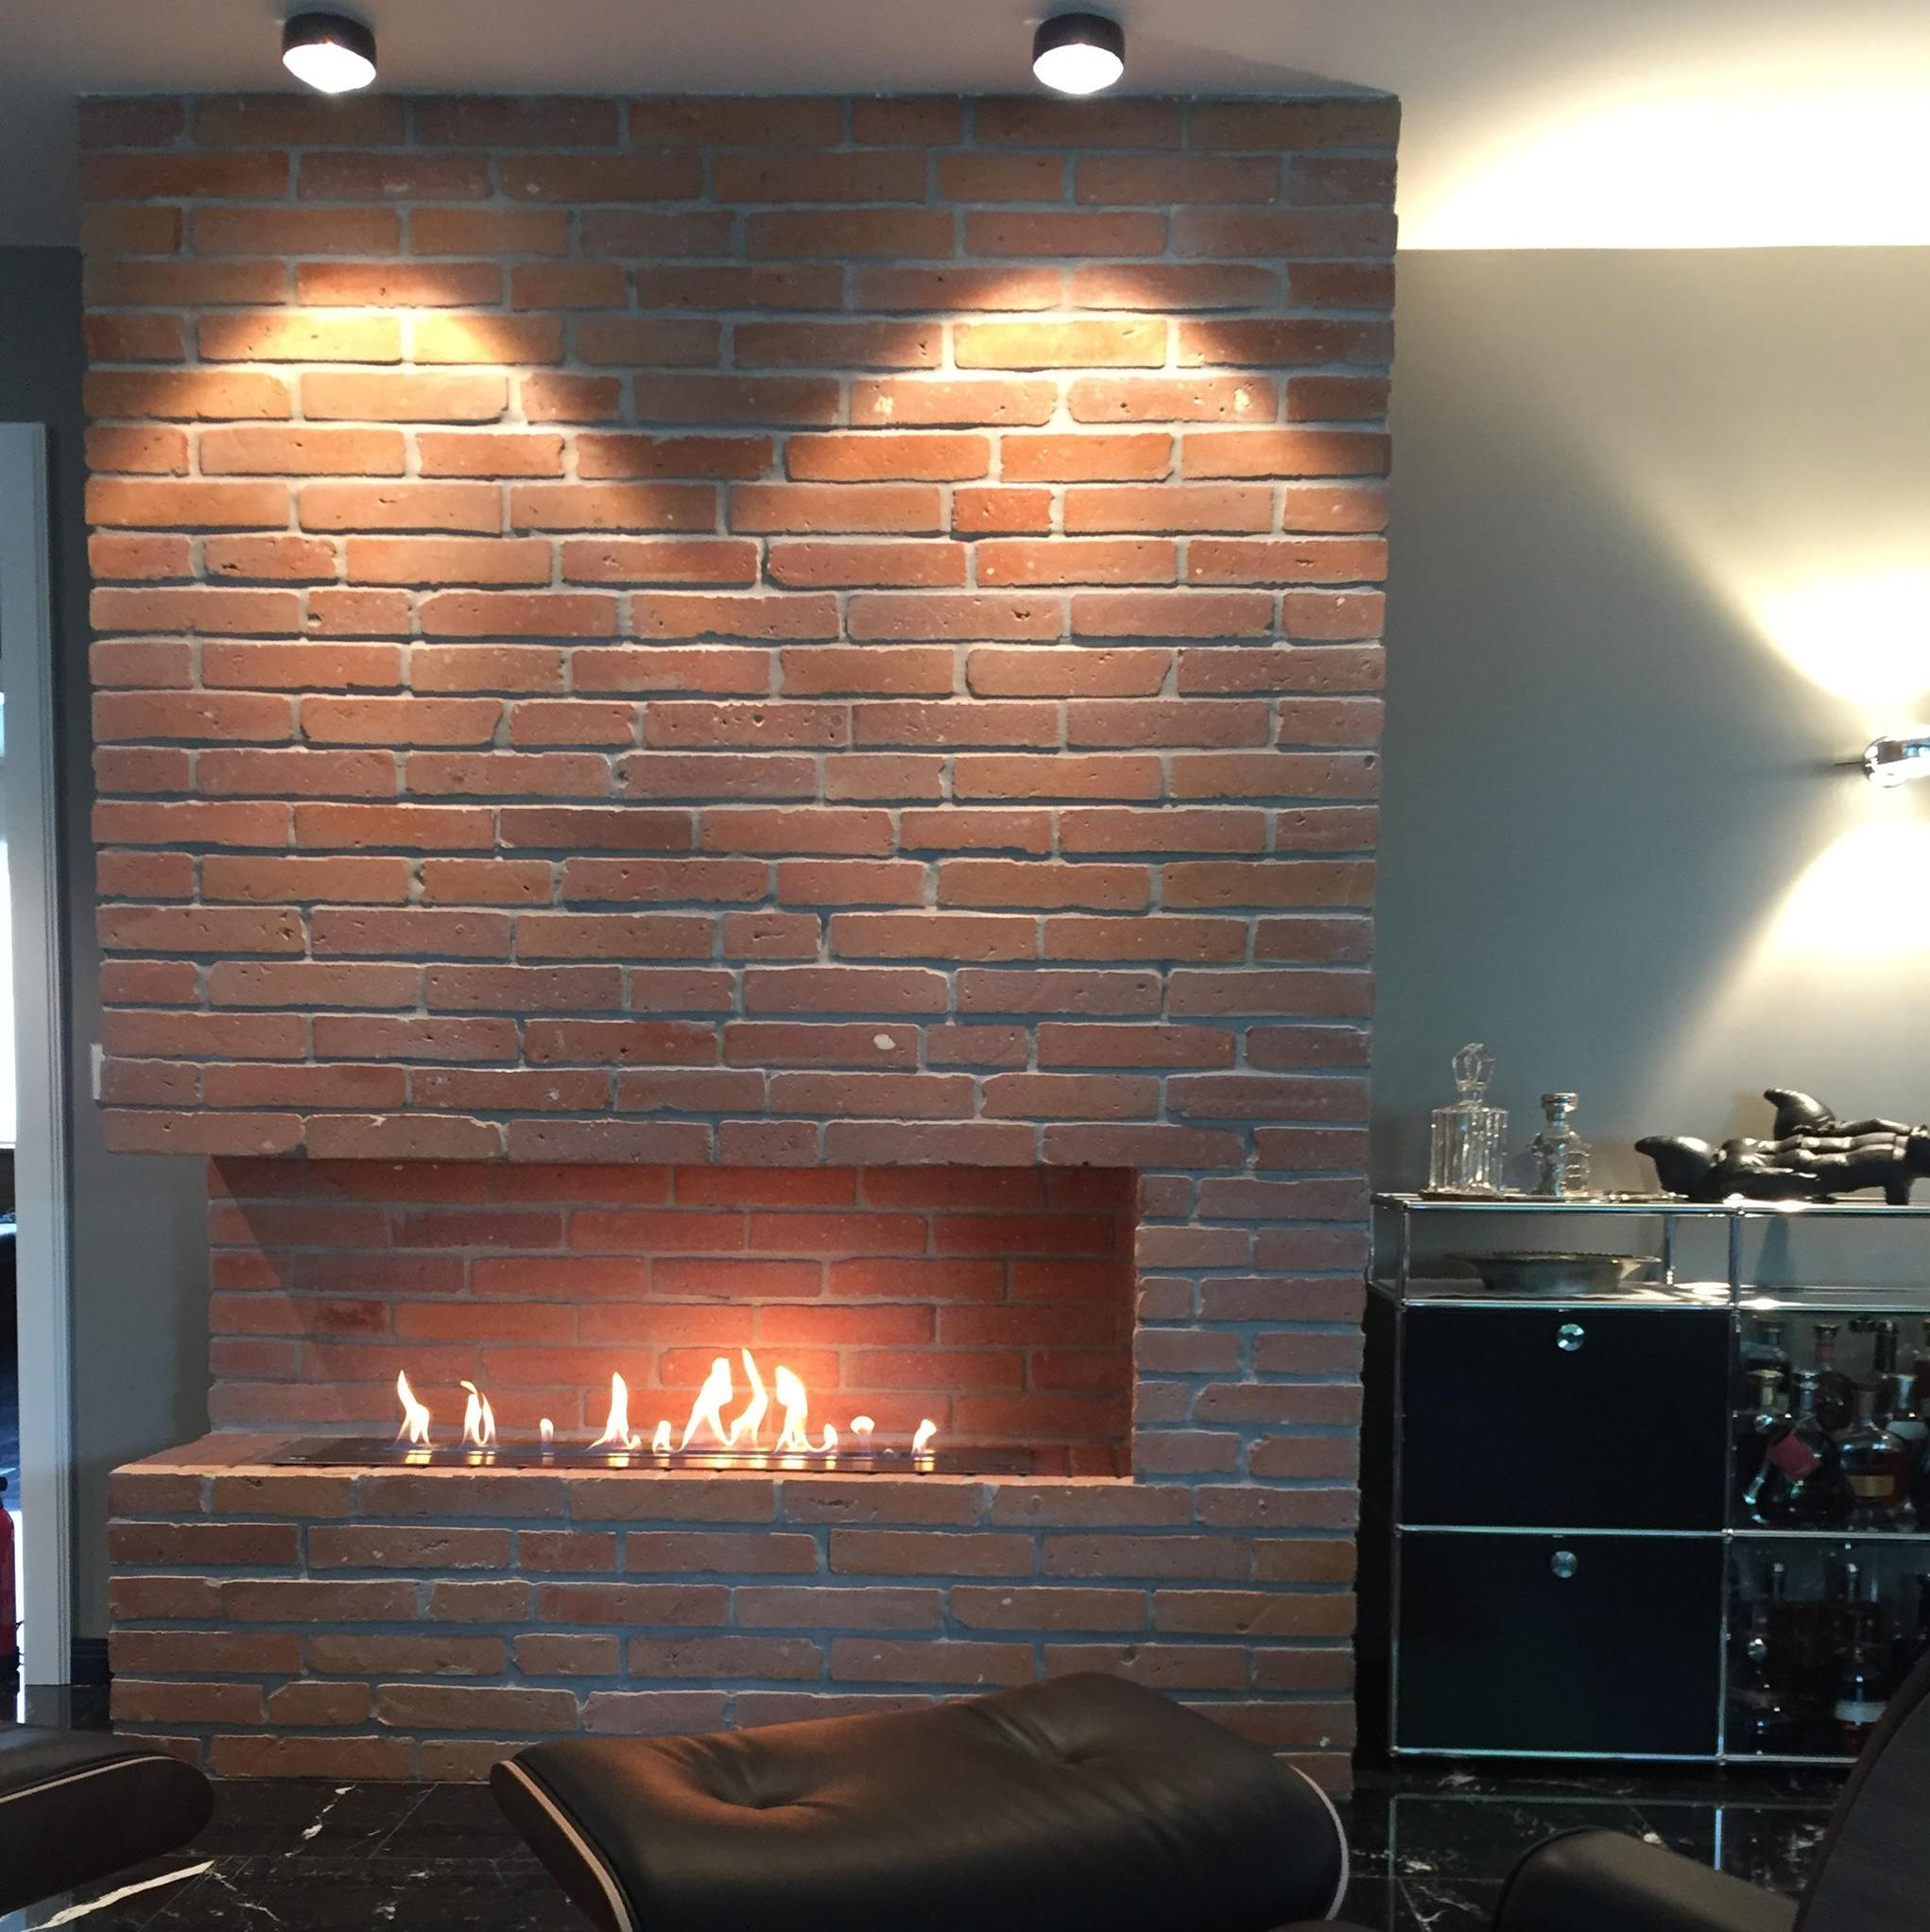 Ethanol Kamin Alternative Fireplaces Without Flue And Without Smoke